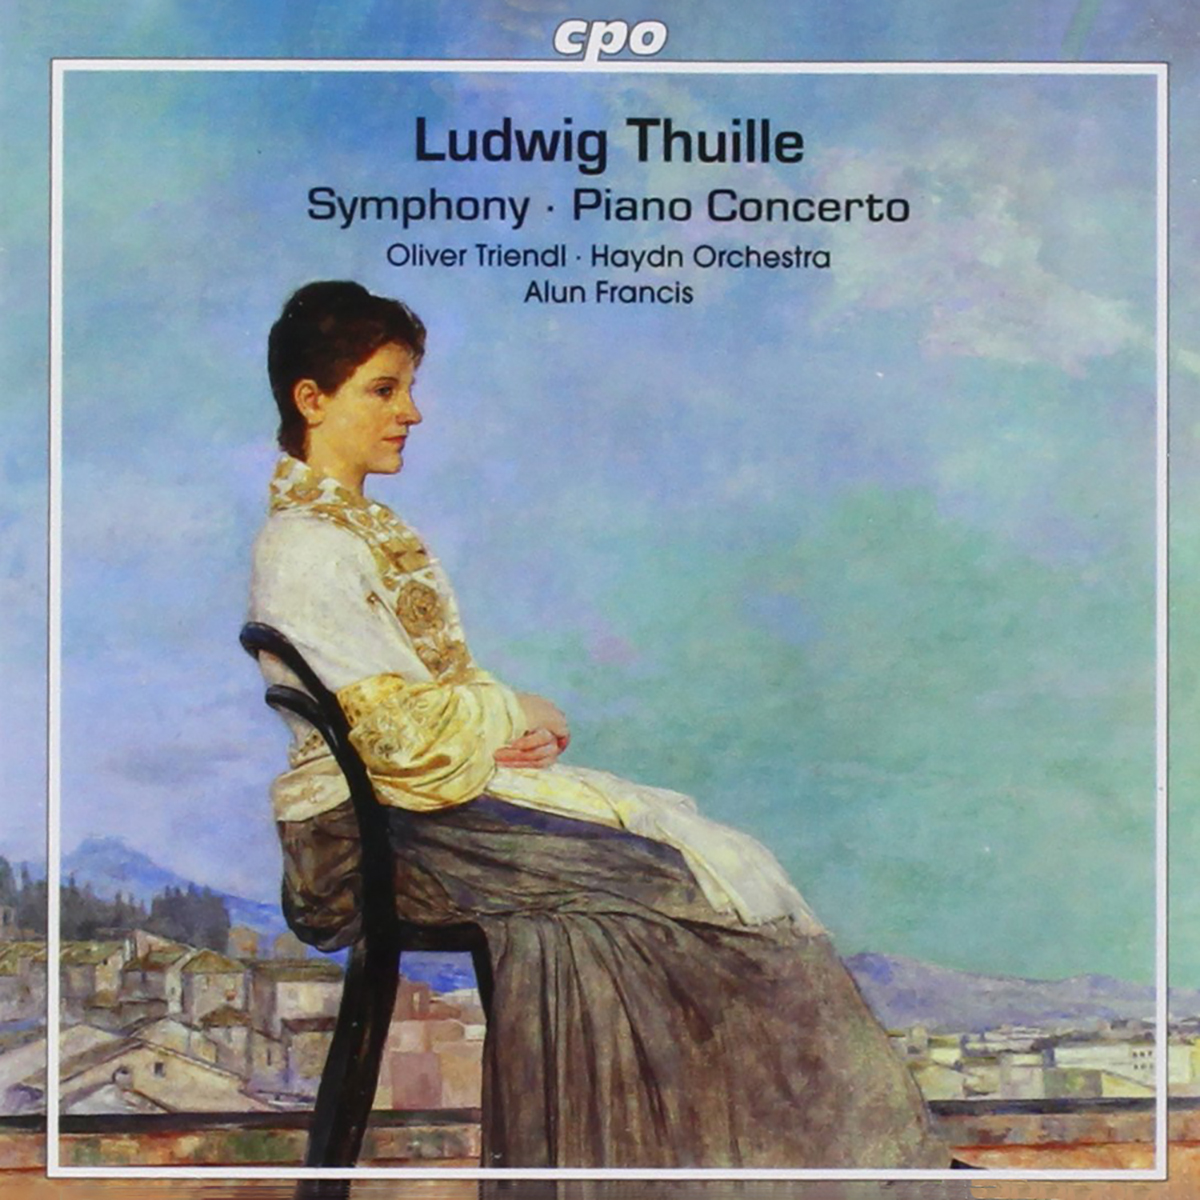 Ludwig Thuille - Piano Concerto in D major, Symphony in F major